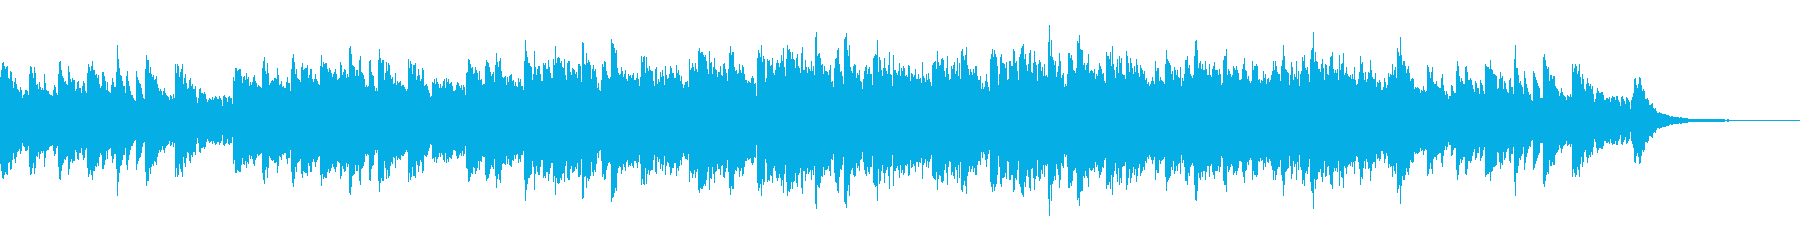 Image of hope, dream, beginning, future, growth's reproduced waveform